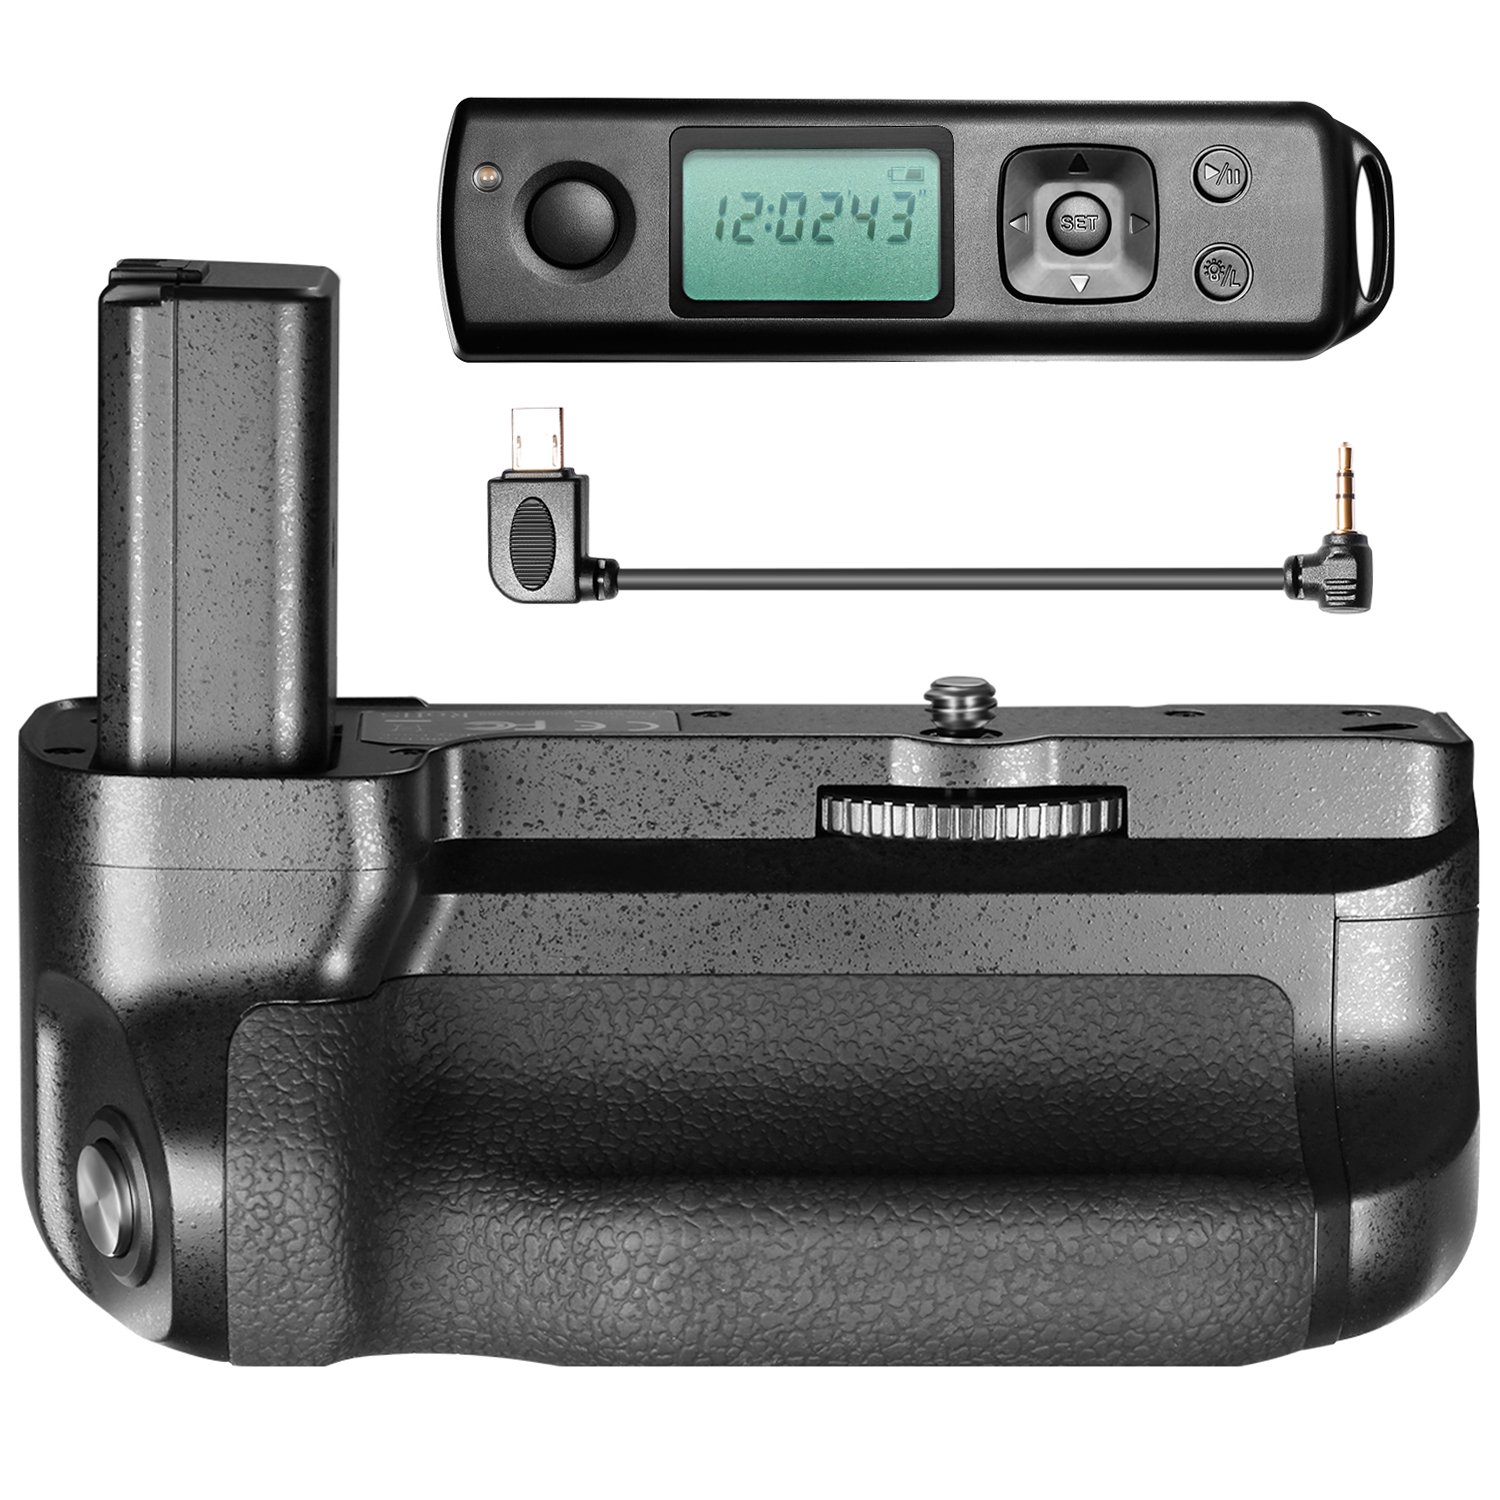 Neewer Battery Grip with Built-in 2.4GHZ LCD Display Remote Control Compatible with Sony A6300 Camera, Work with Sony FW50 Battery(Battery Not Included)